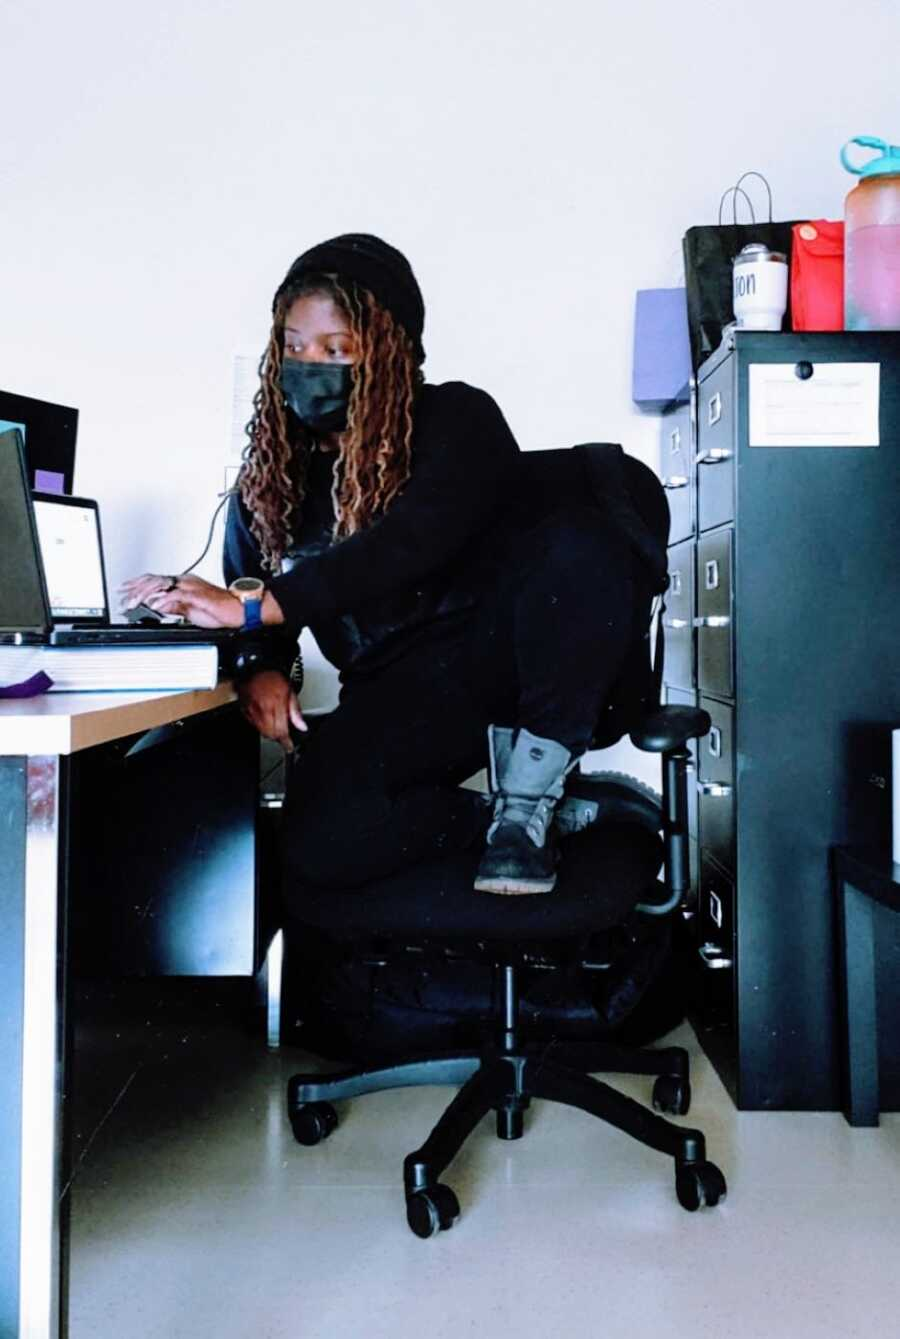 Teacher trying to teach in-person wears an all-black outfit with a black mask